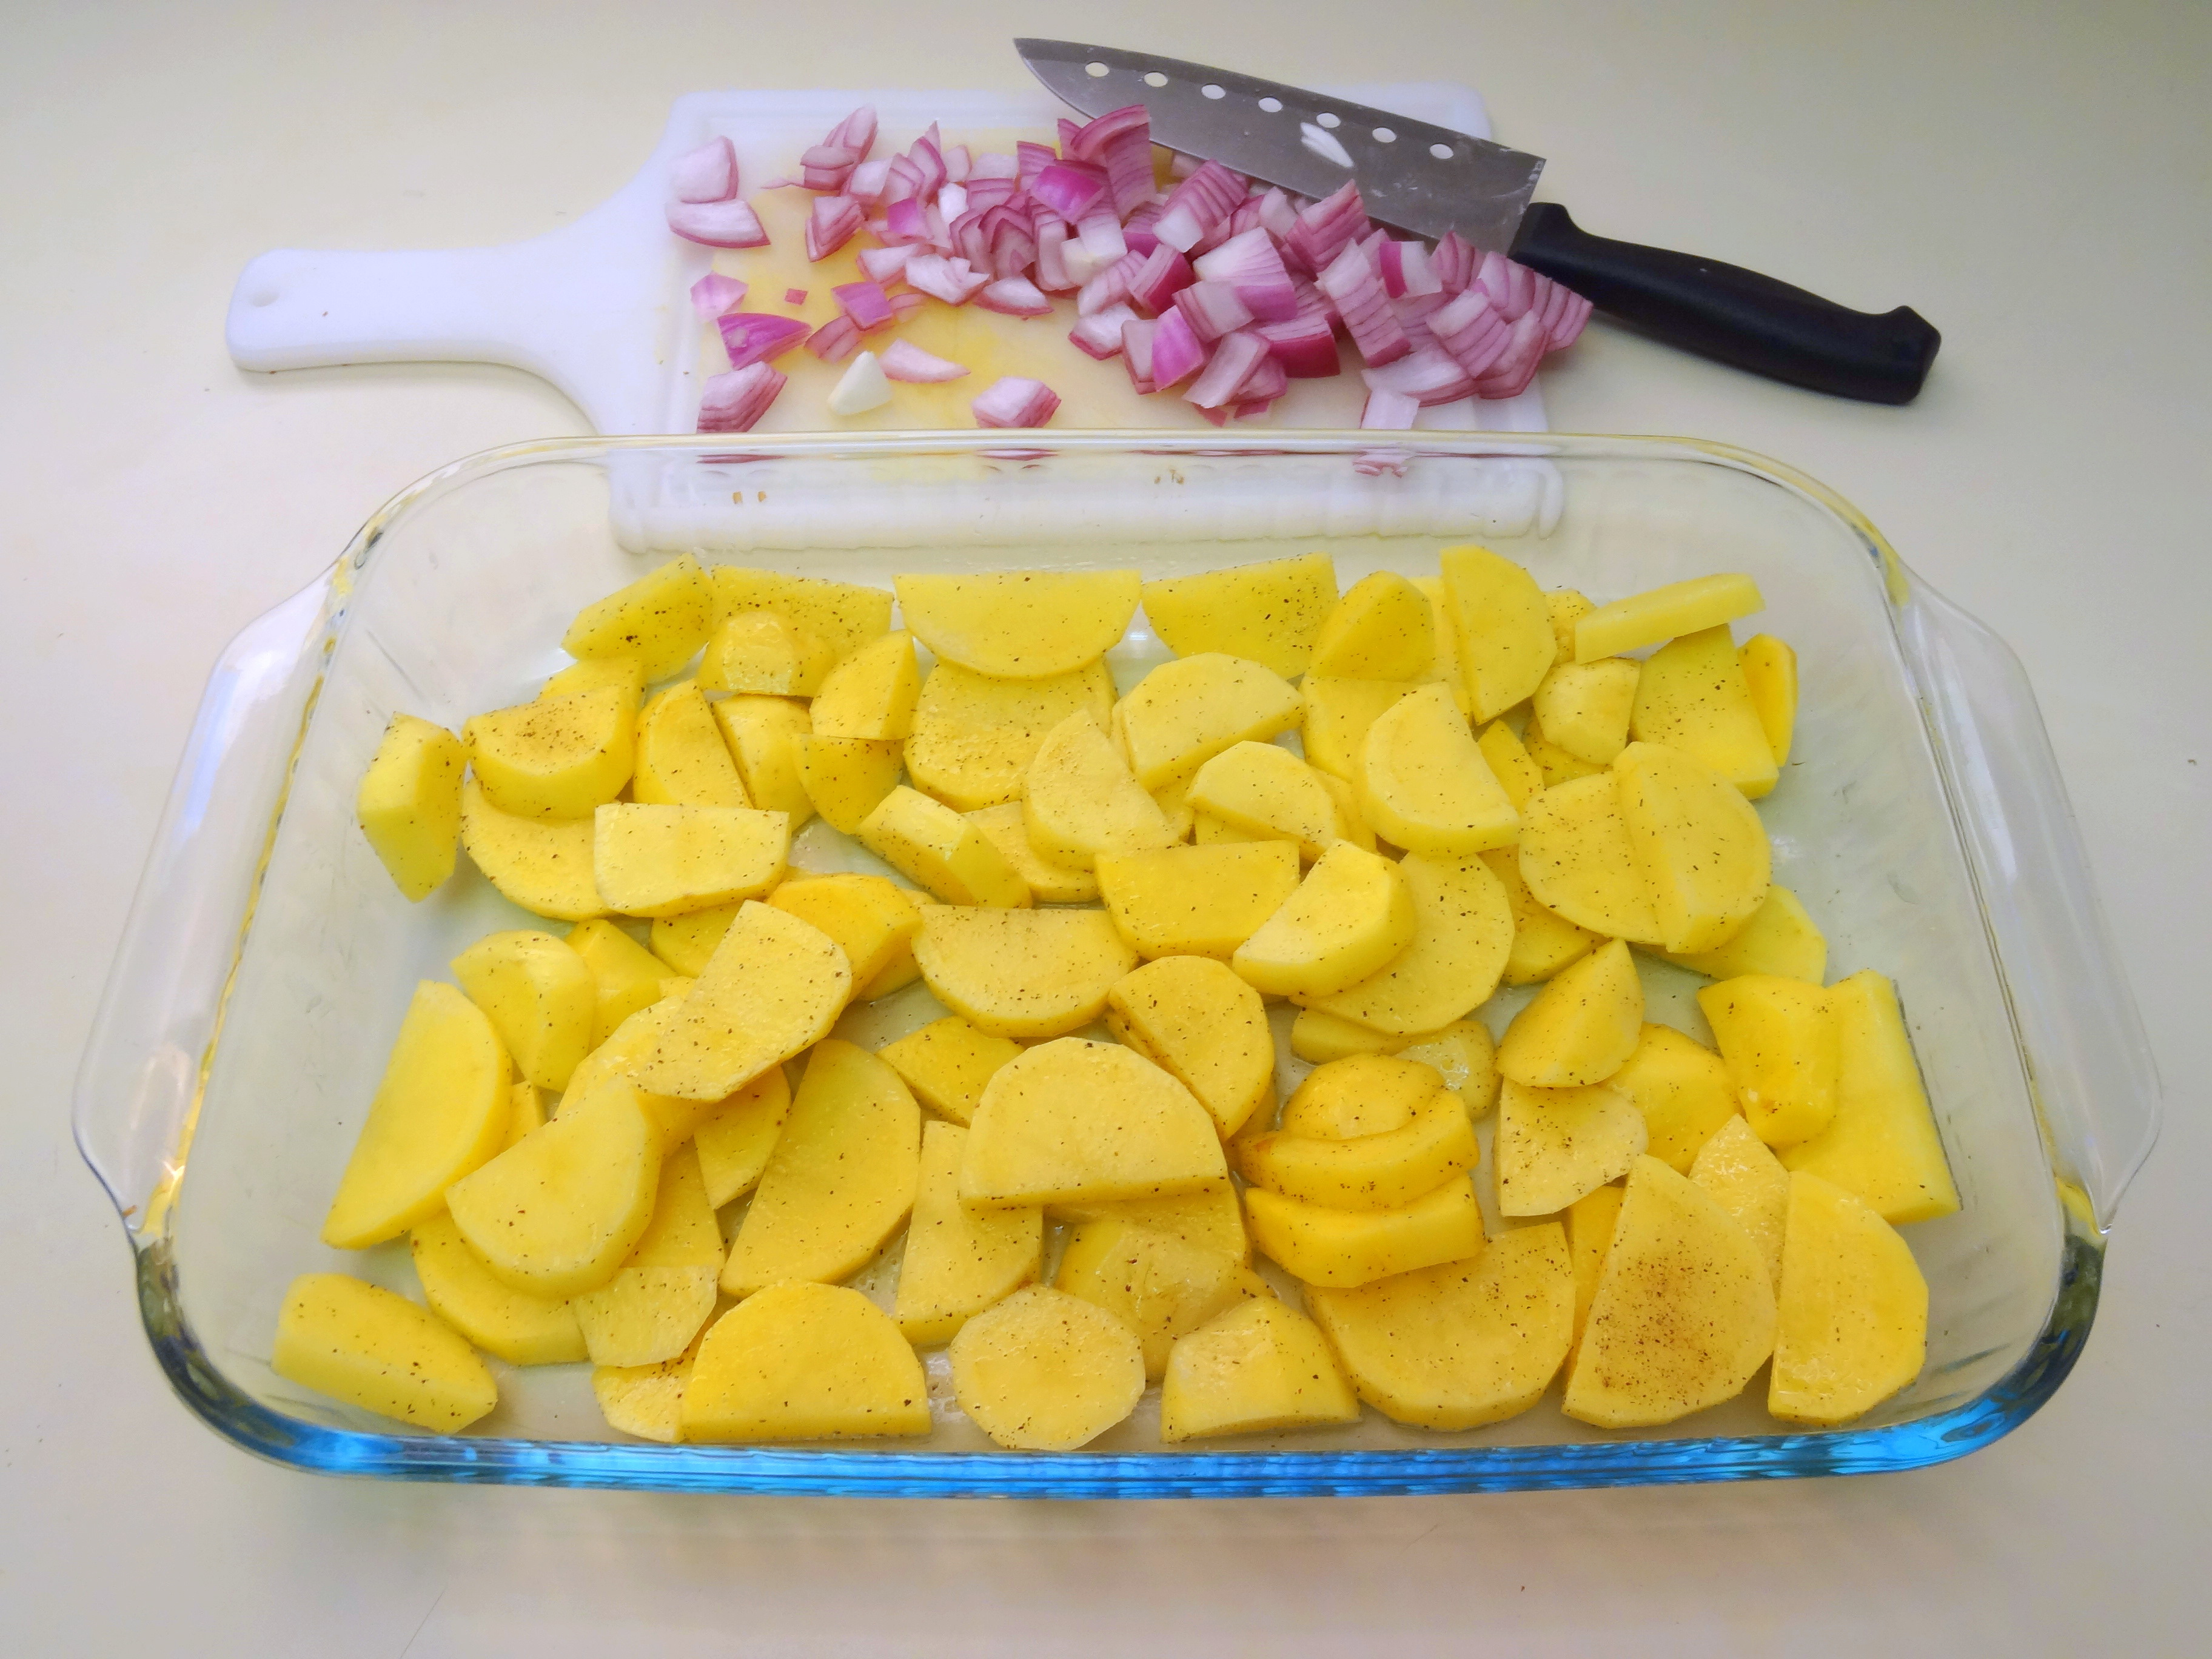 Potatoes for the frittata